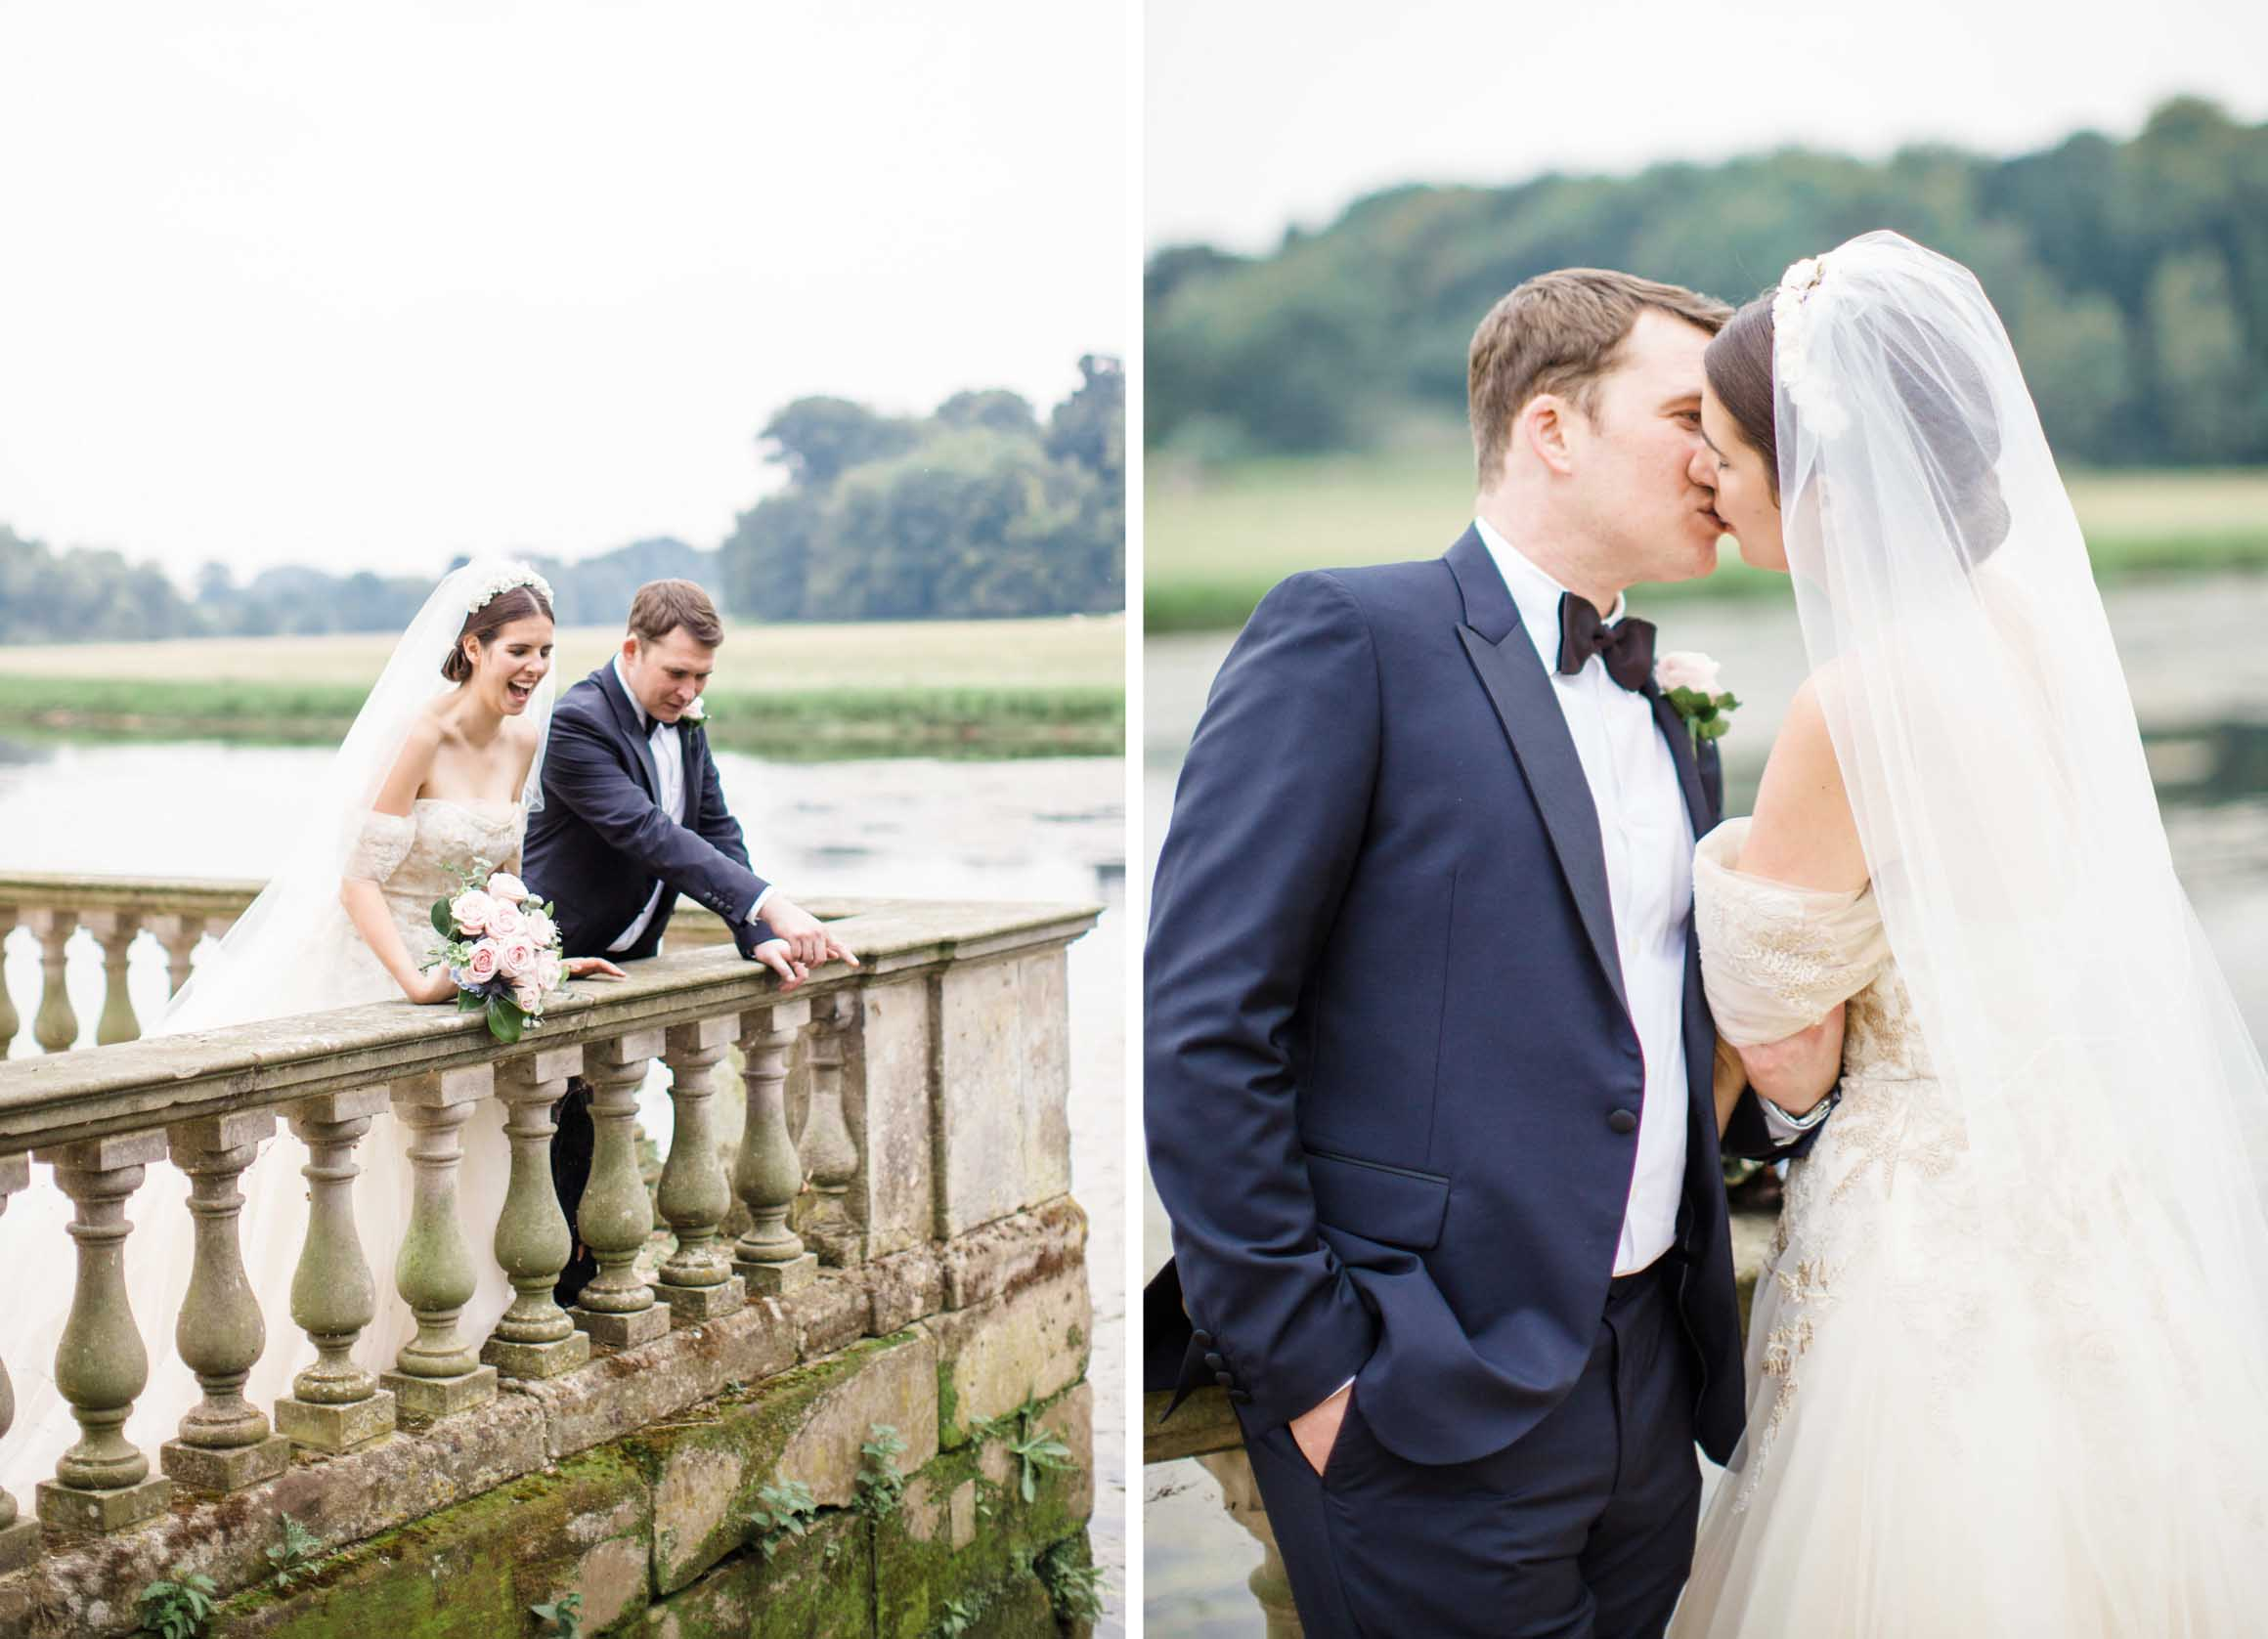 Amy O'Boyle Photography- Destination & UK Fine Art Film Wedding Photographer- Stoneleigh Abbey Wedding 6.jpg